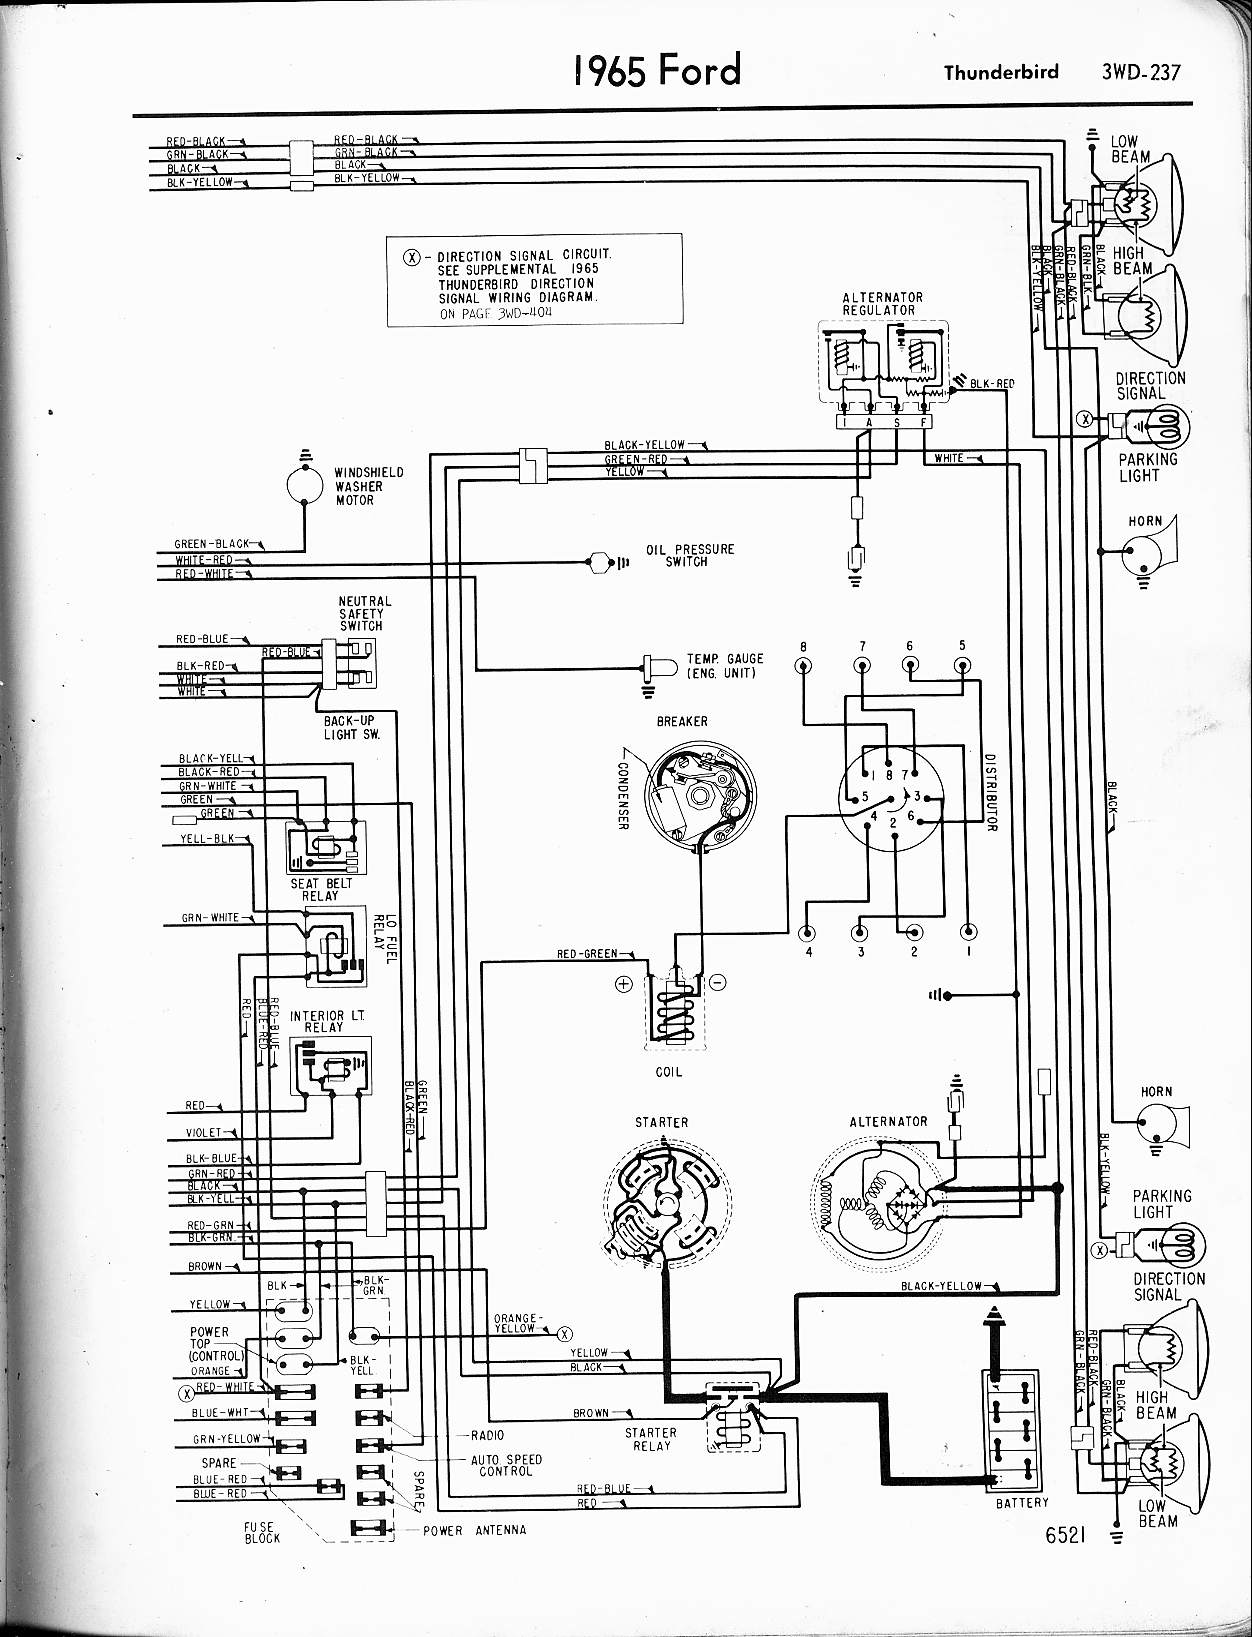 63 thunderbird voltage regulator wiring diagram simple wiring diagram fuel  trim wiring diagram 1956 ford wiring